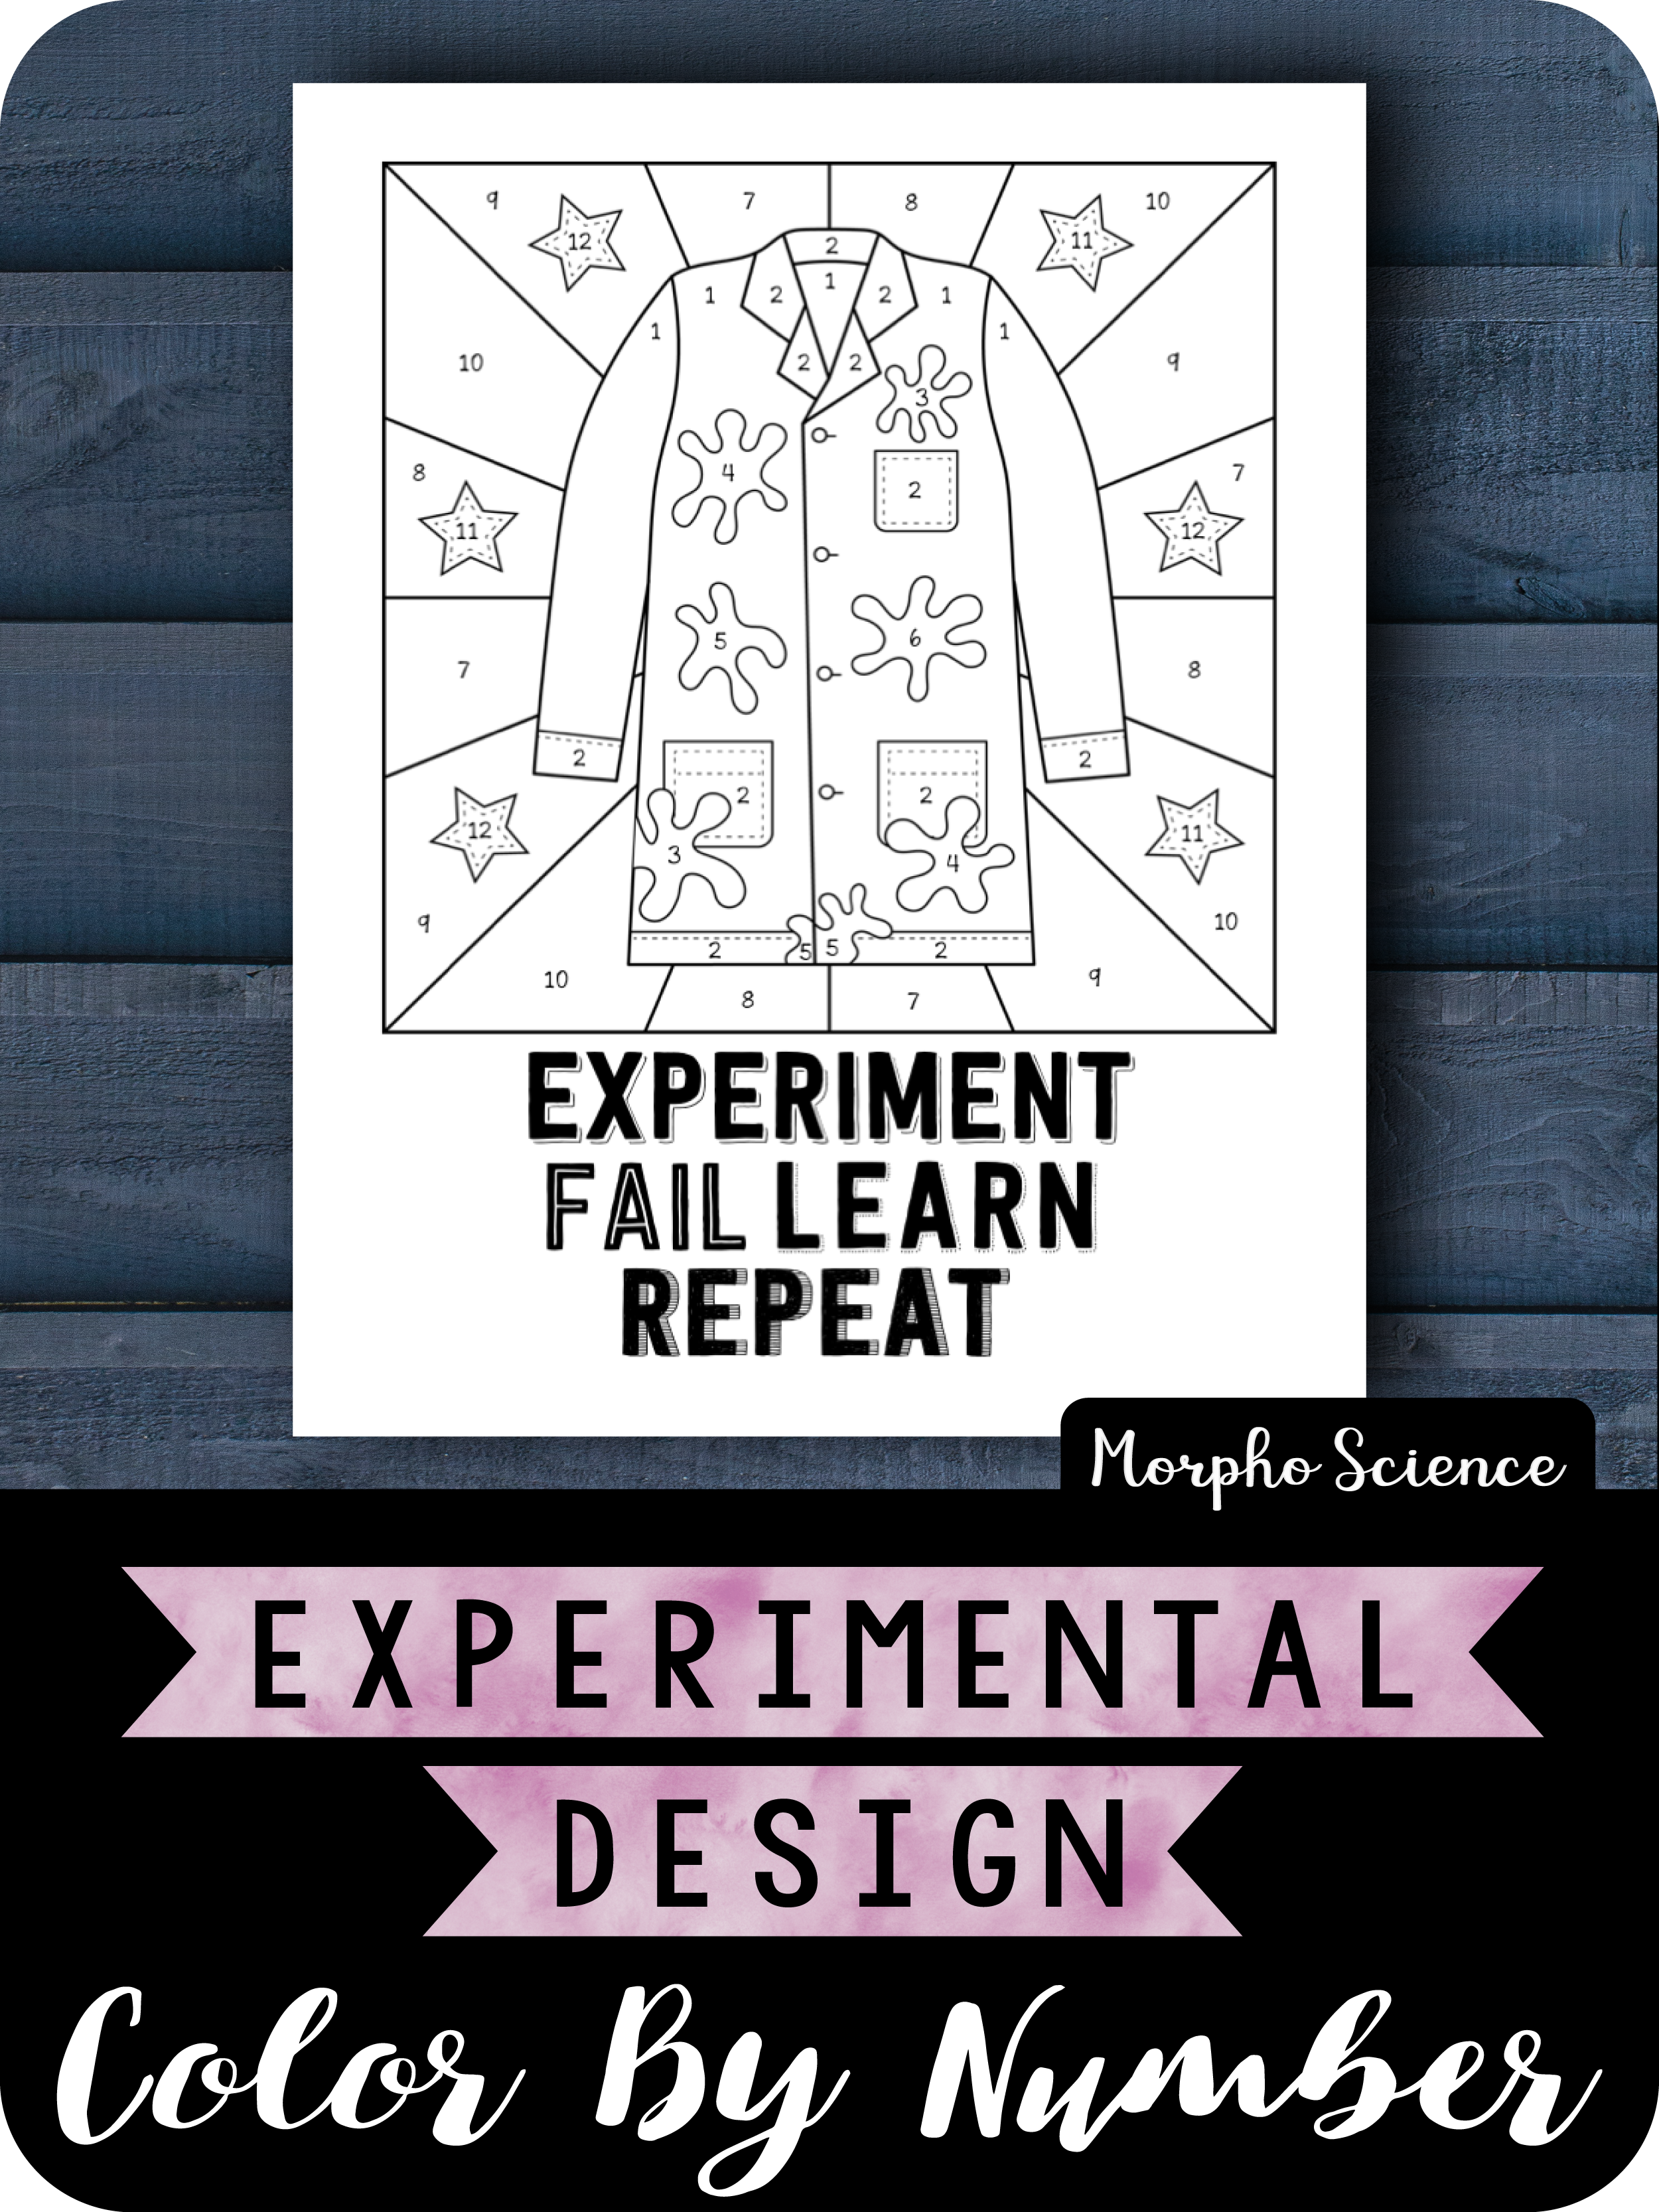 Experimental Design Color By Number Fun Worksheet Color Design Fun Worksheets Number Fun [ 3333 x 2500 Pixel ]